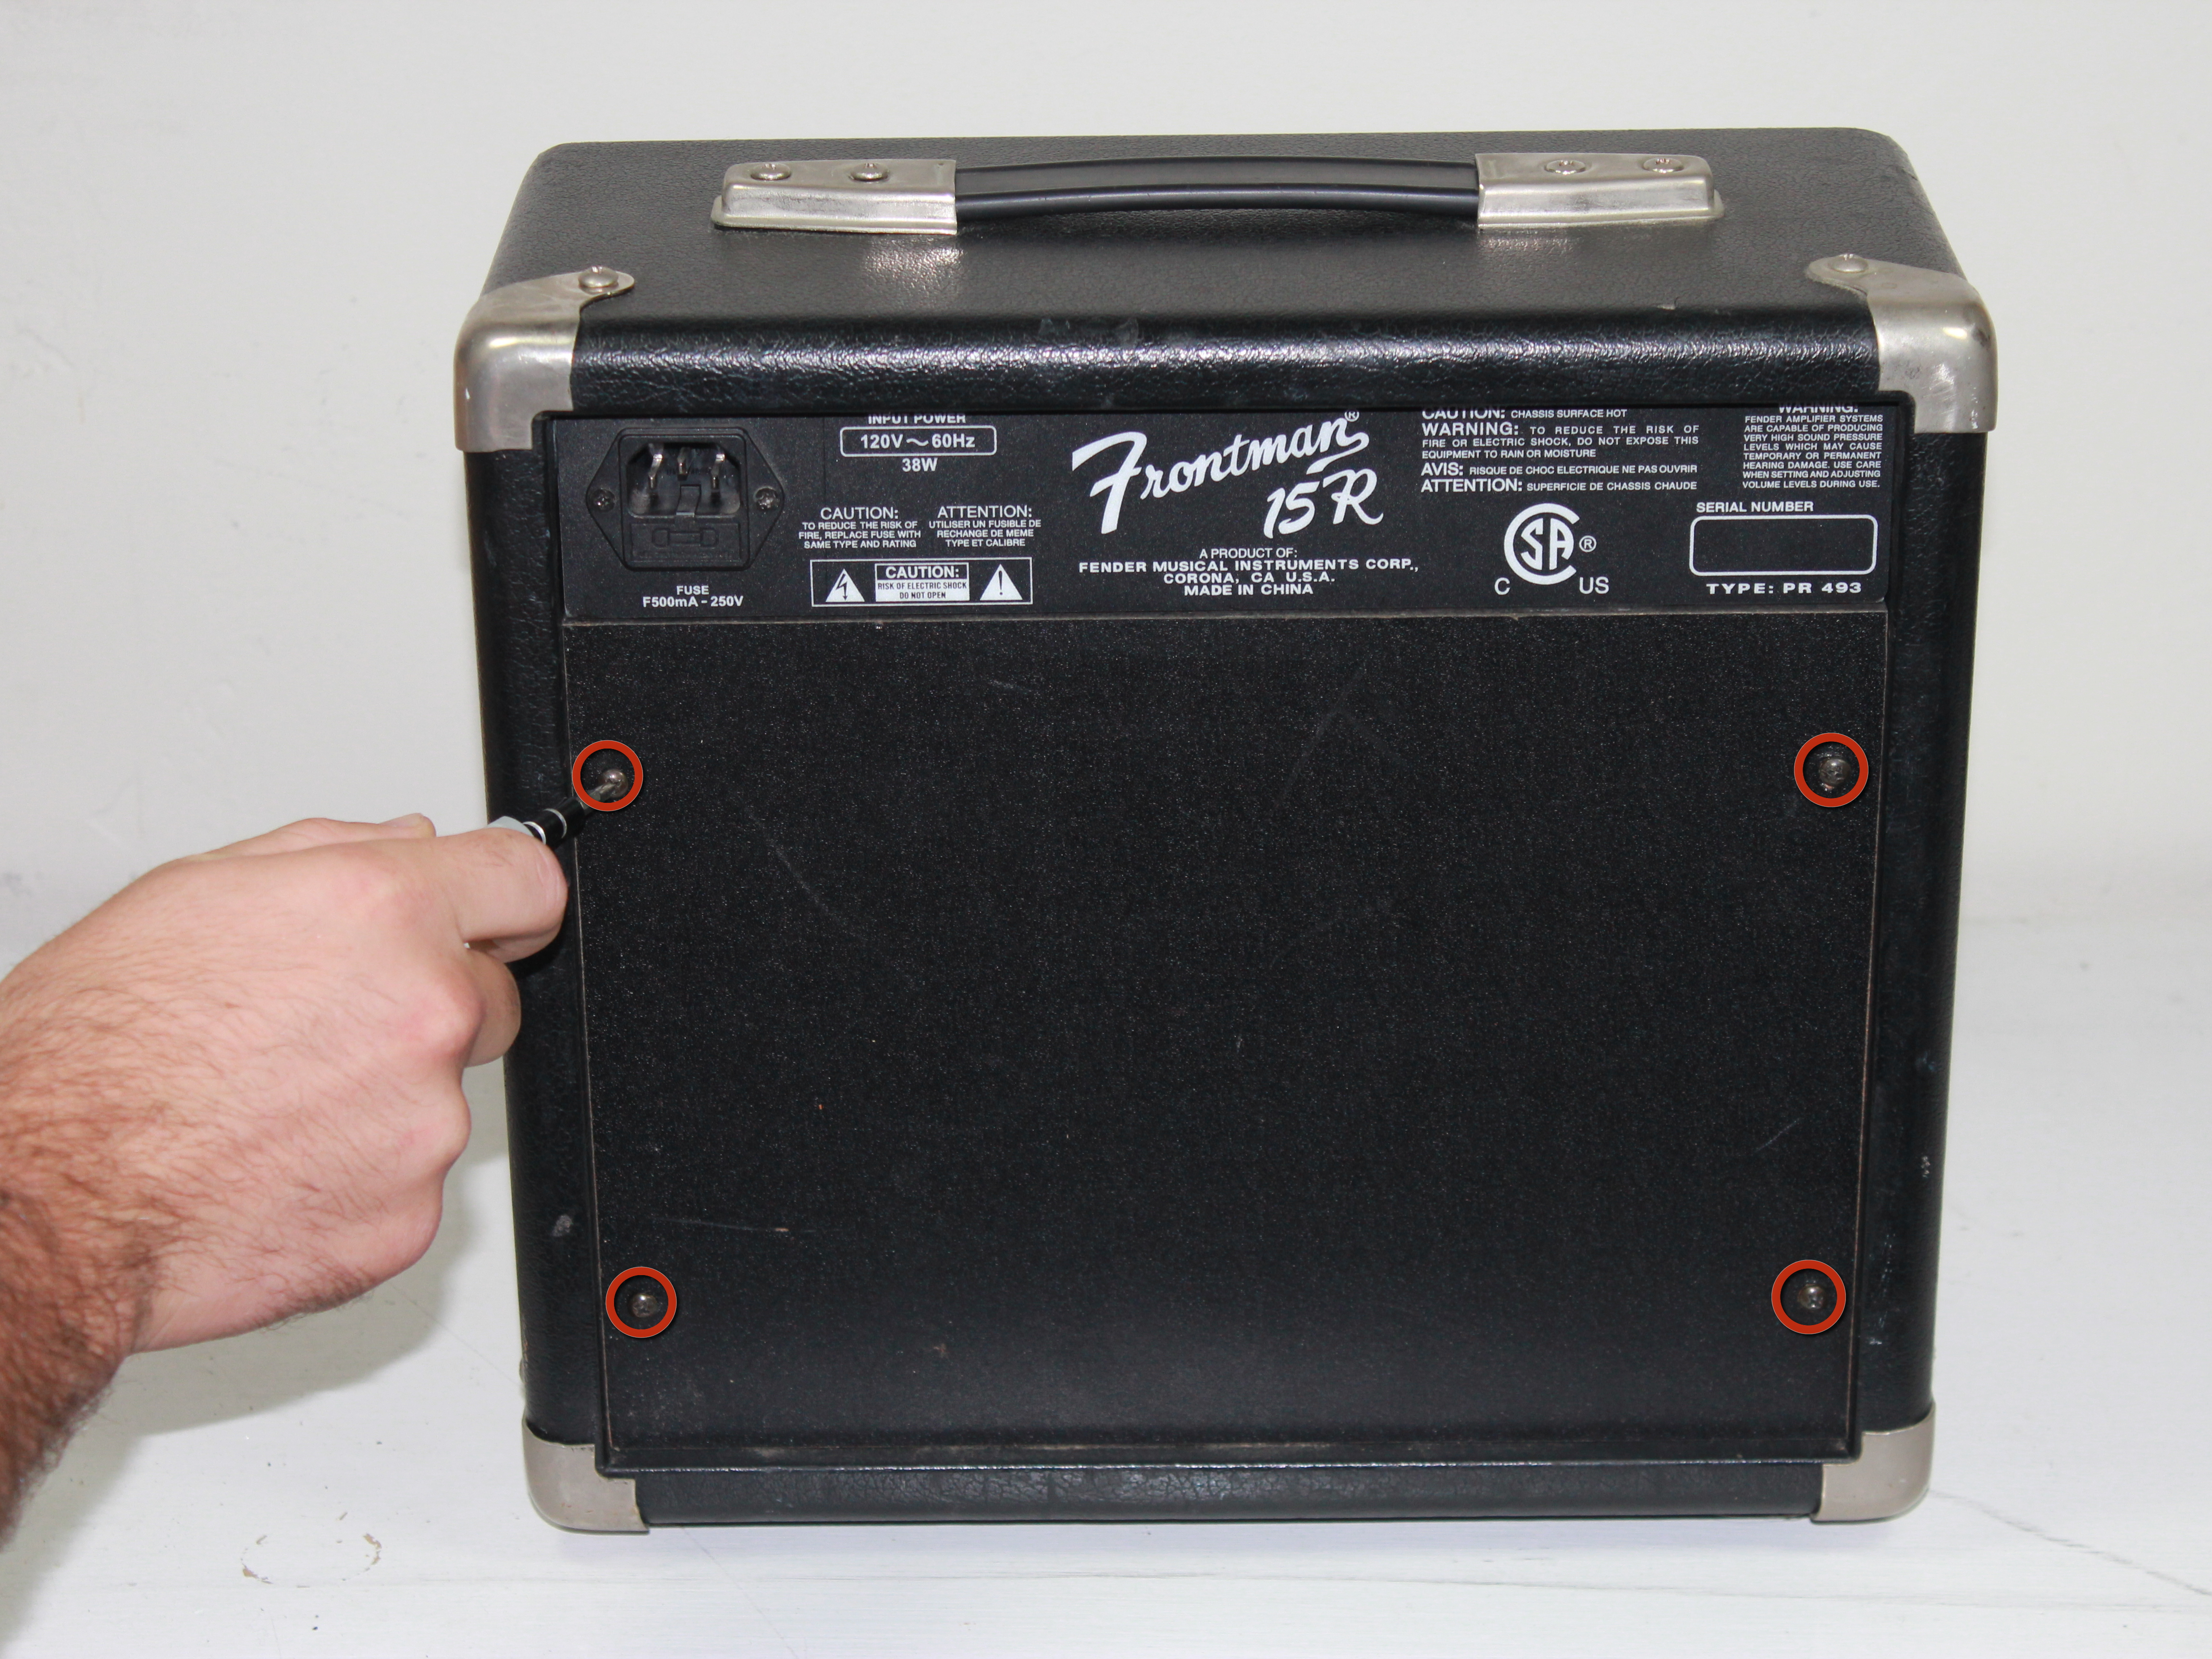 how to fix input jack on a fender frontman 15r ifixit repair guide rh ifixit com squier sp 10 amp manual squier sp 10 amp manual